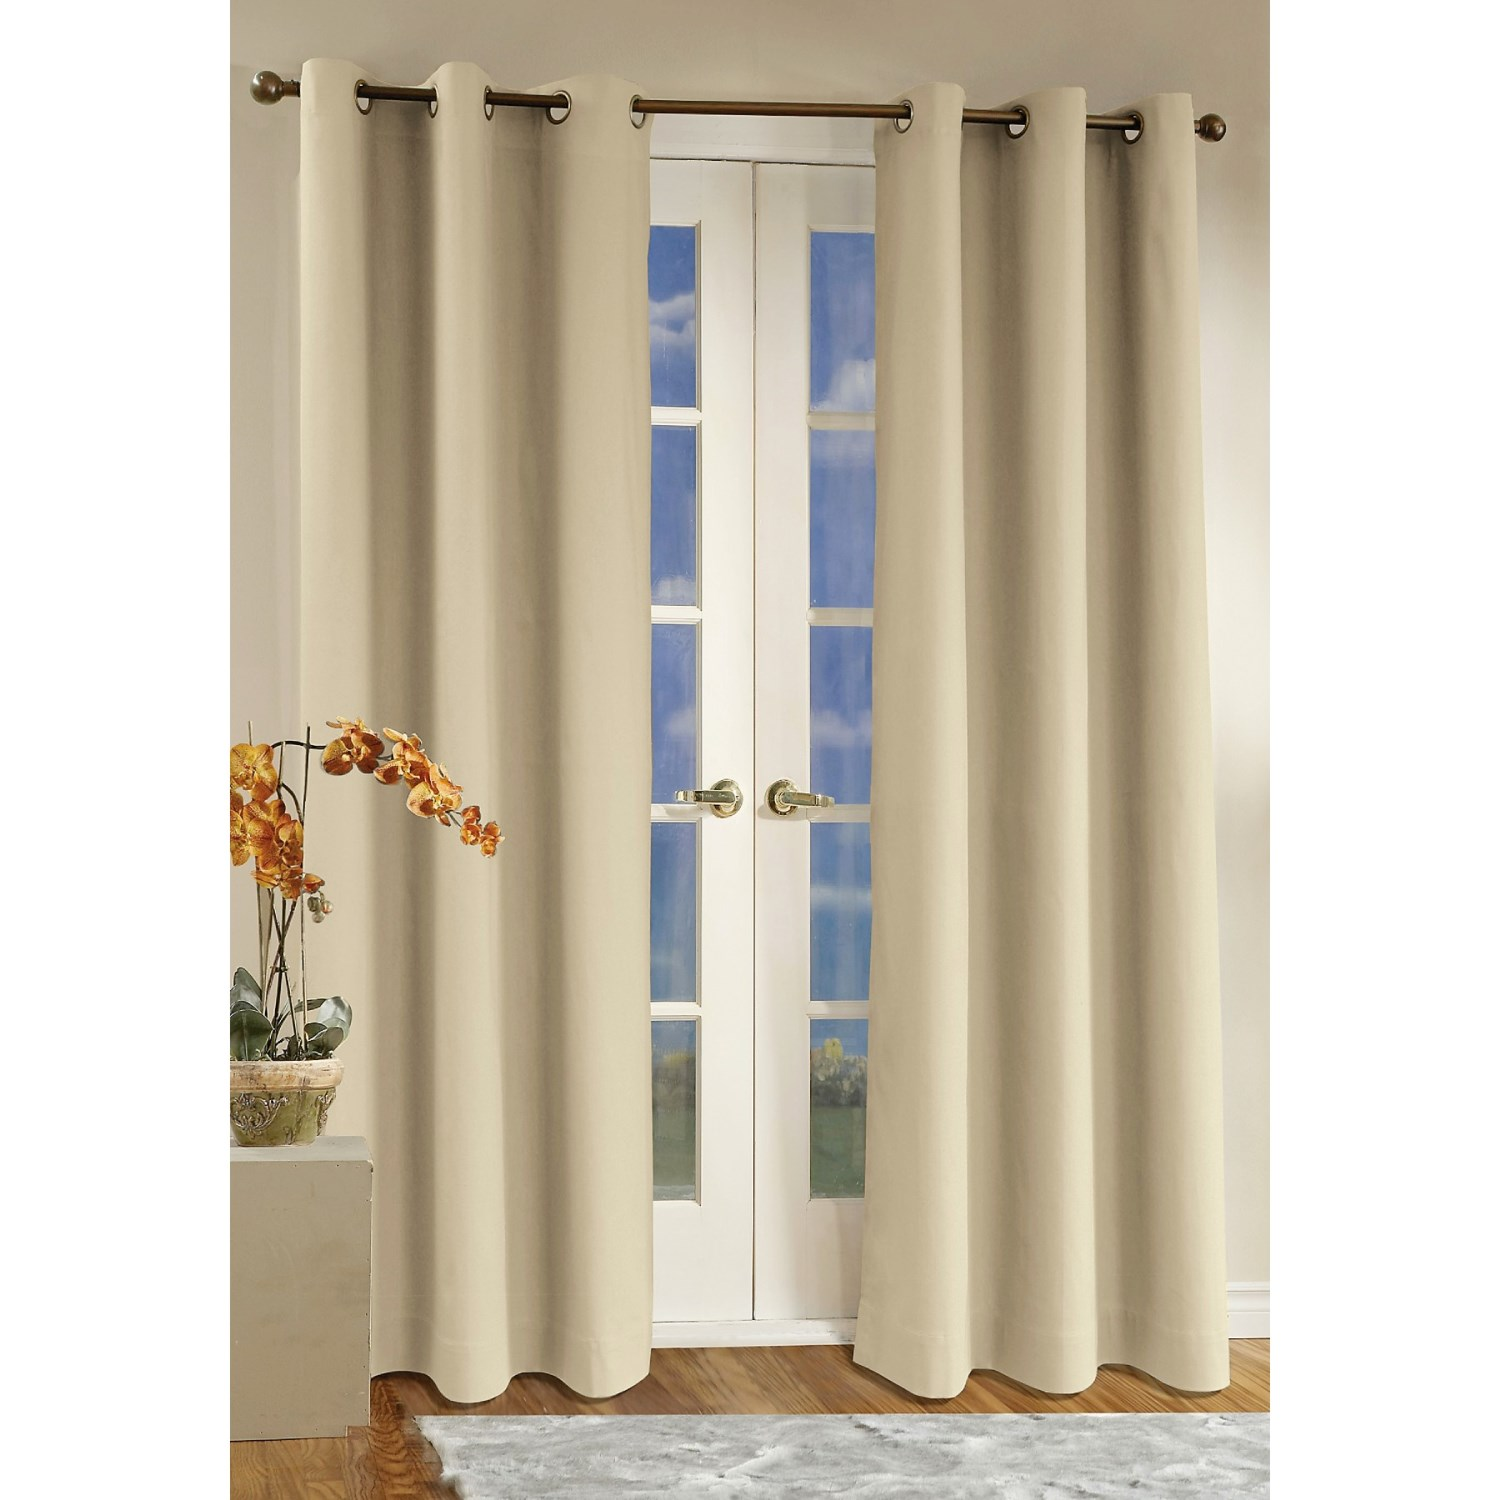 Thermalogic weathermate curtains 80x54 grommet top for Insulated french doors